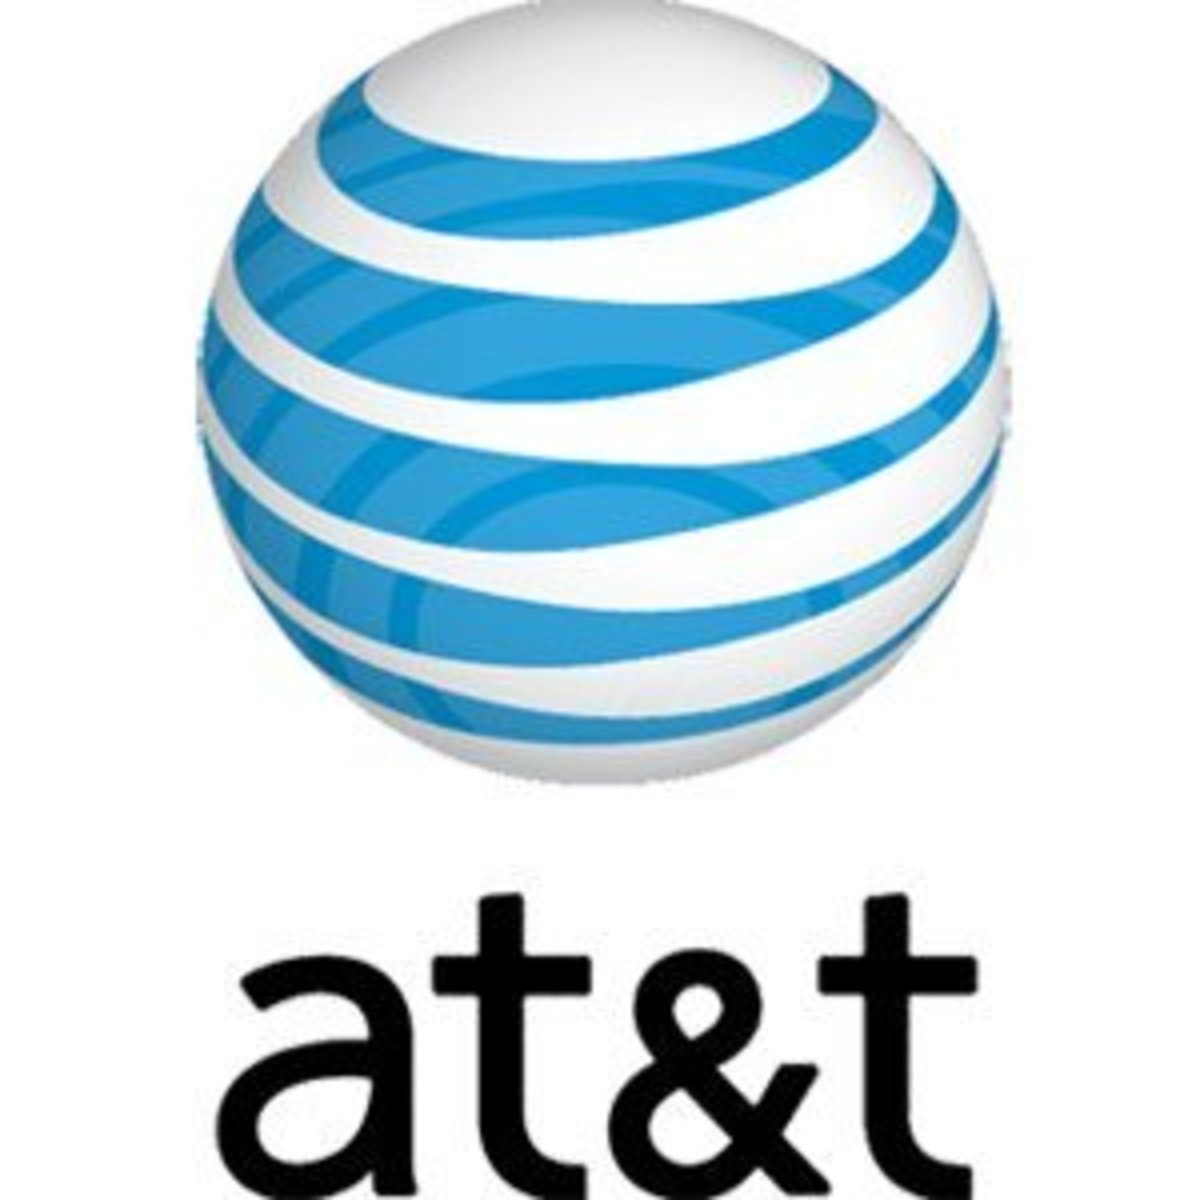 AT&T stands for American Telephone & Telegraph